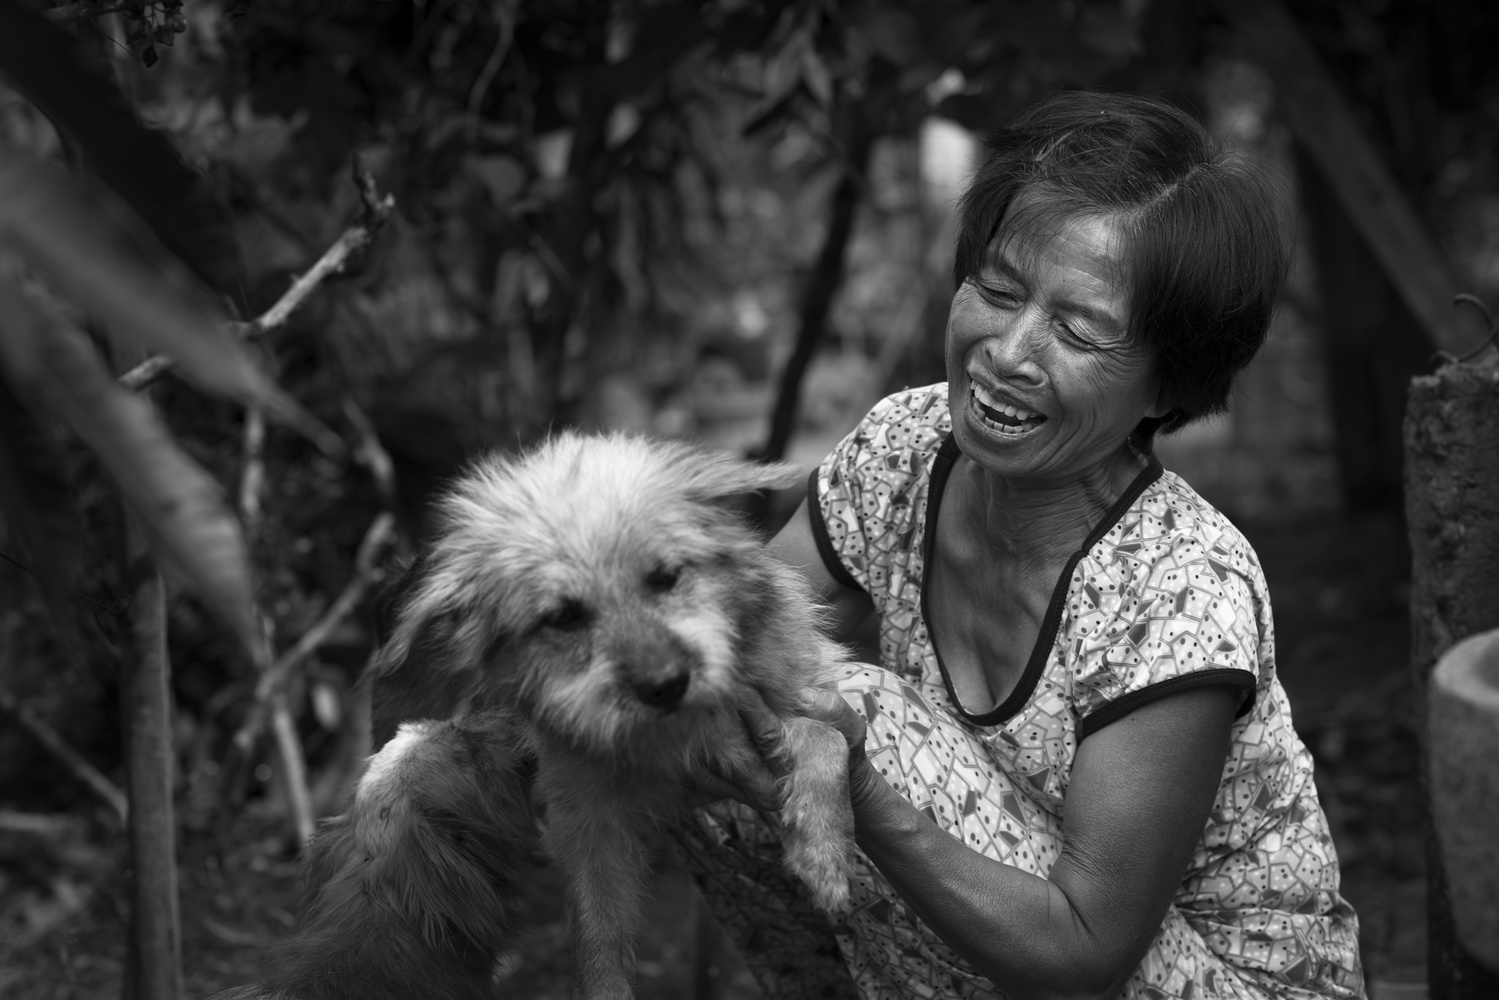 Vietnamese woman with her dog by Léonard Rodriguez